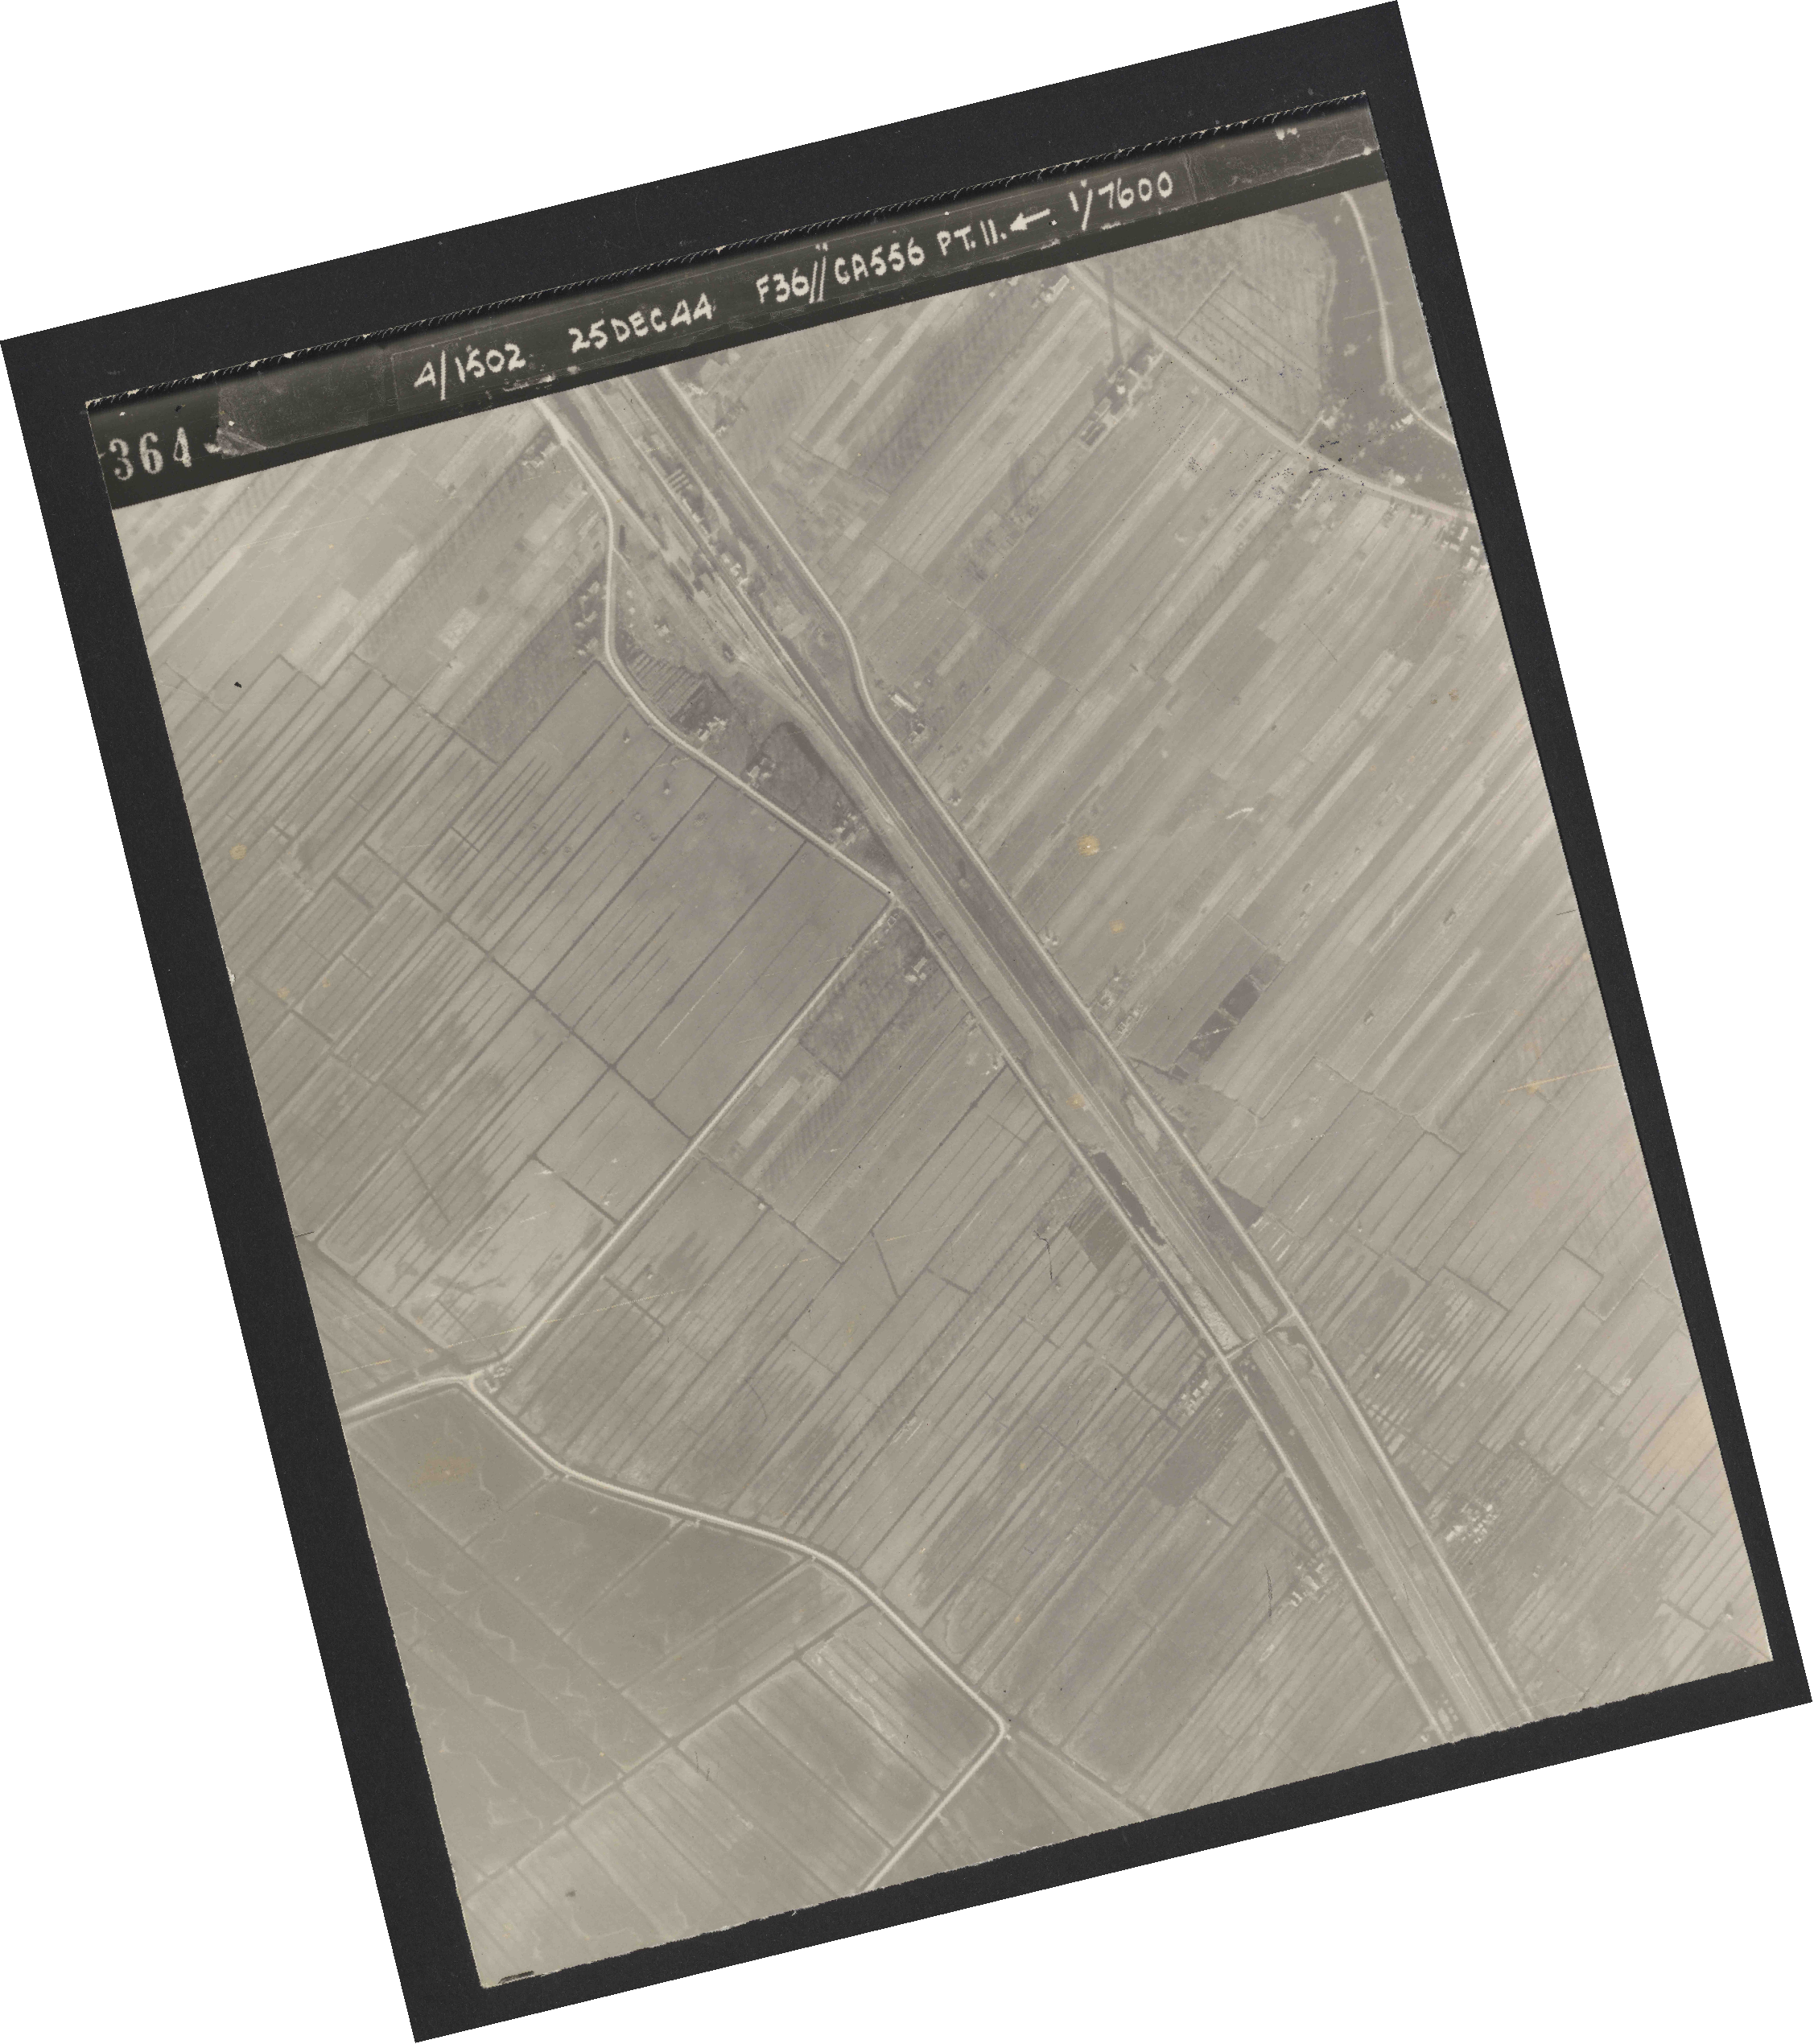 Collection RAF aerial photos 1940-1945 - flight 306, run 11, photo 4364